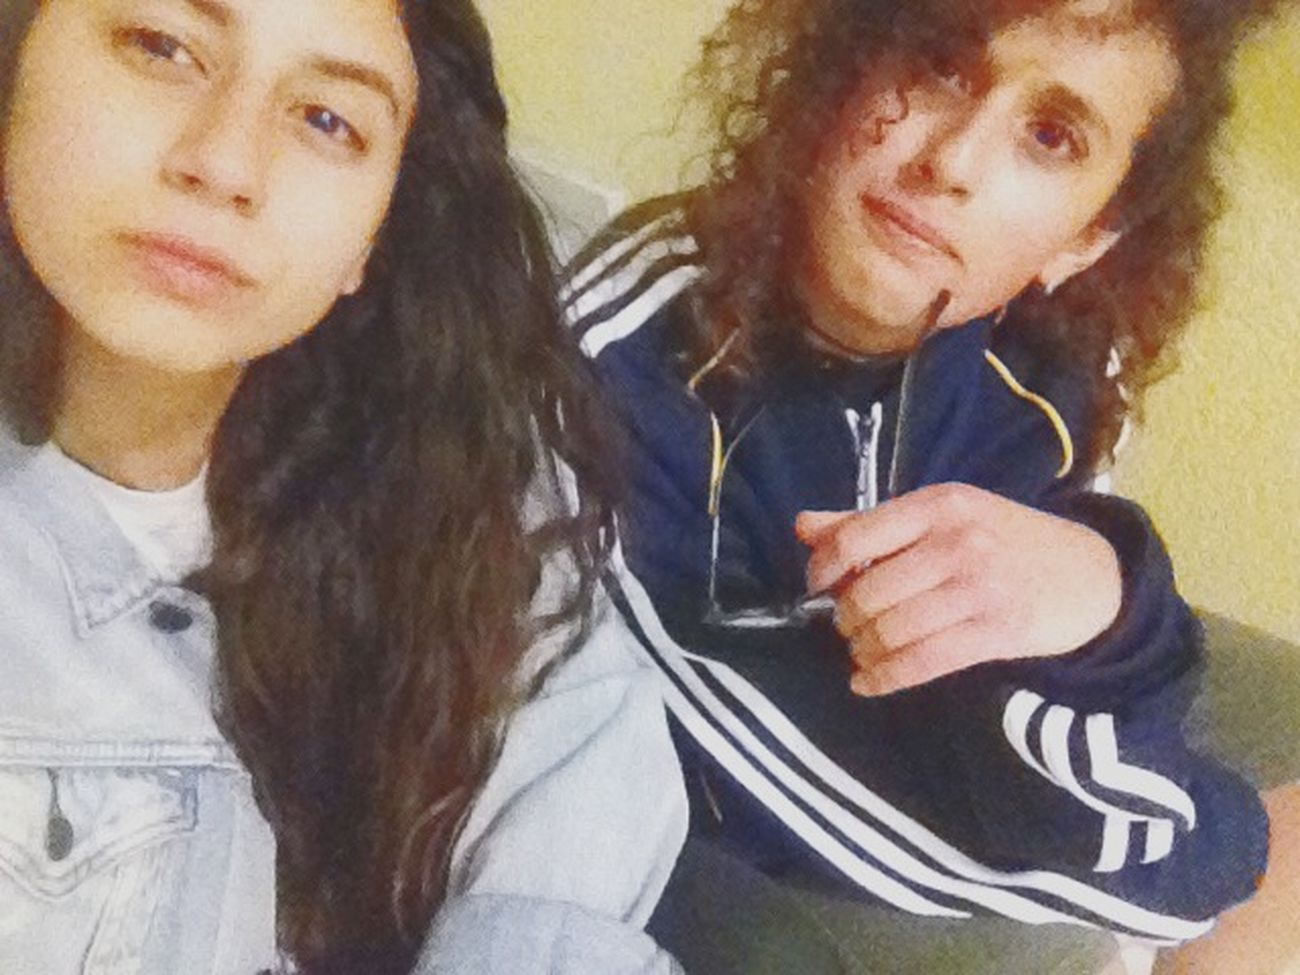 100happydays 5day Smoke Weed Crying Bestfriend Happytopday